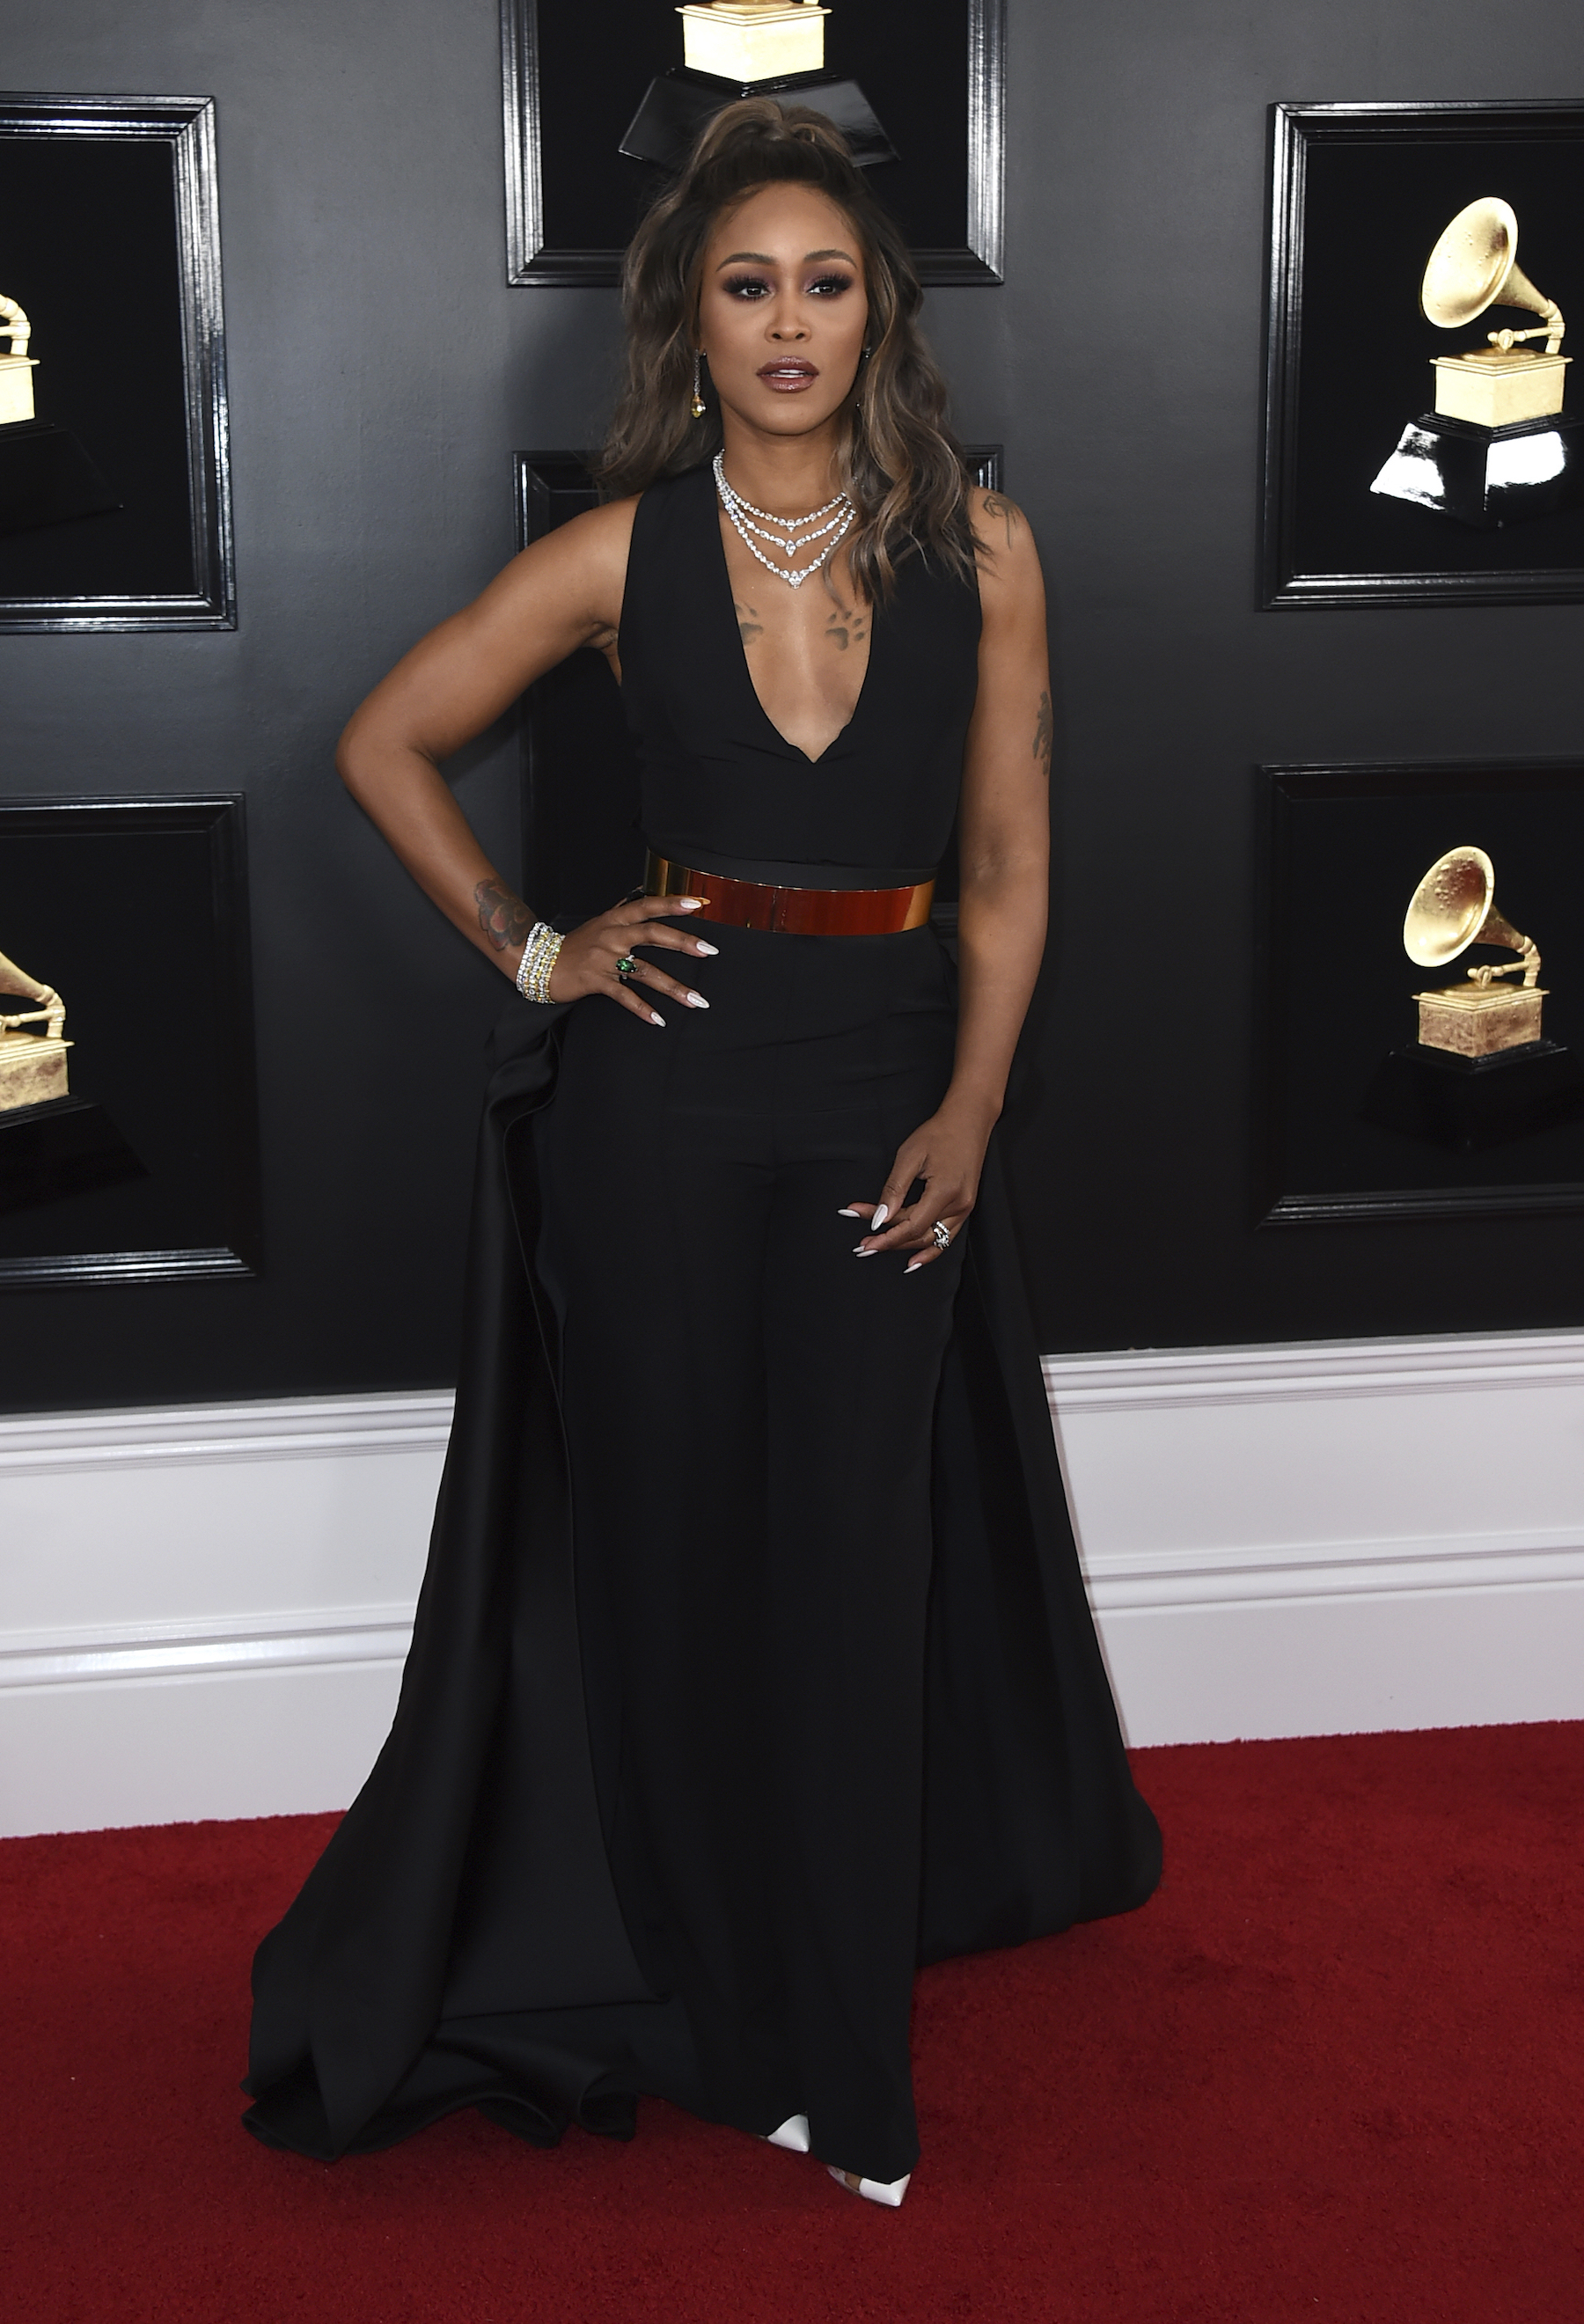 <div class='meta'><div class='origin-logo' data-origin='AP'></div><span class='caption-text' data-credit='Jordan Strauss/Invision/AP'>Eve arrives at the 61st annual Grammy Awards at the Staples Center on Sunday, Feb. 10, 2019, in Los Angeles.</span></div>